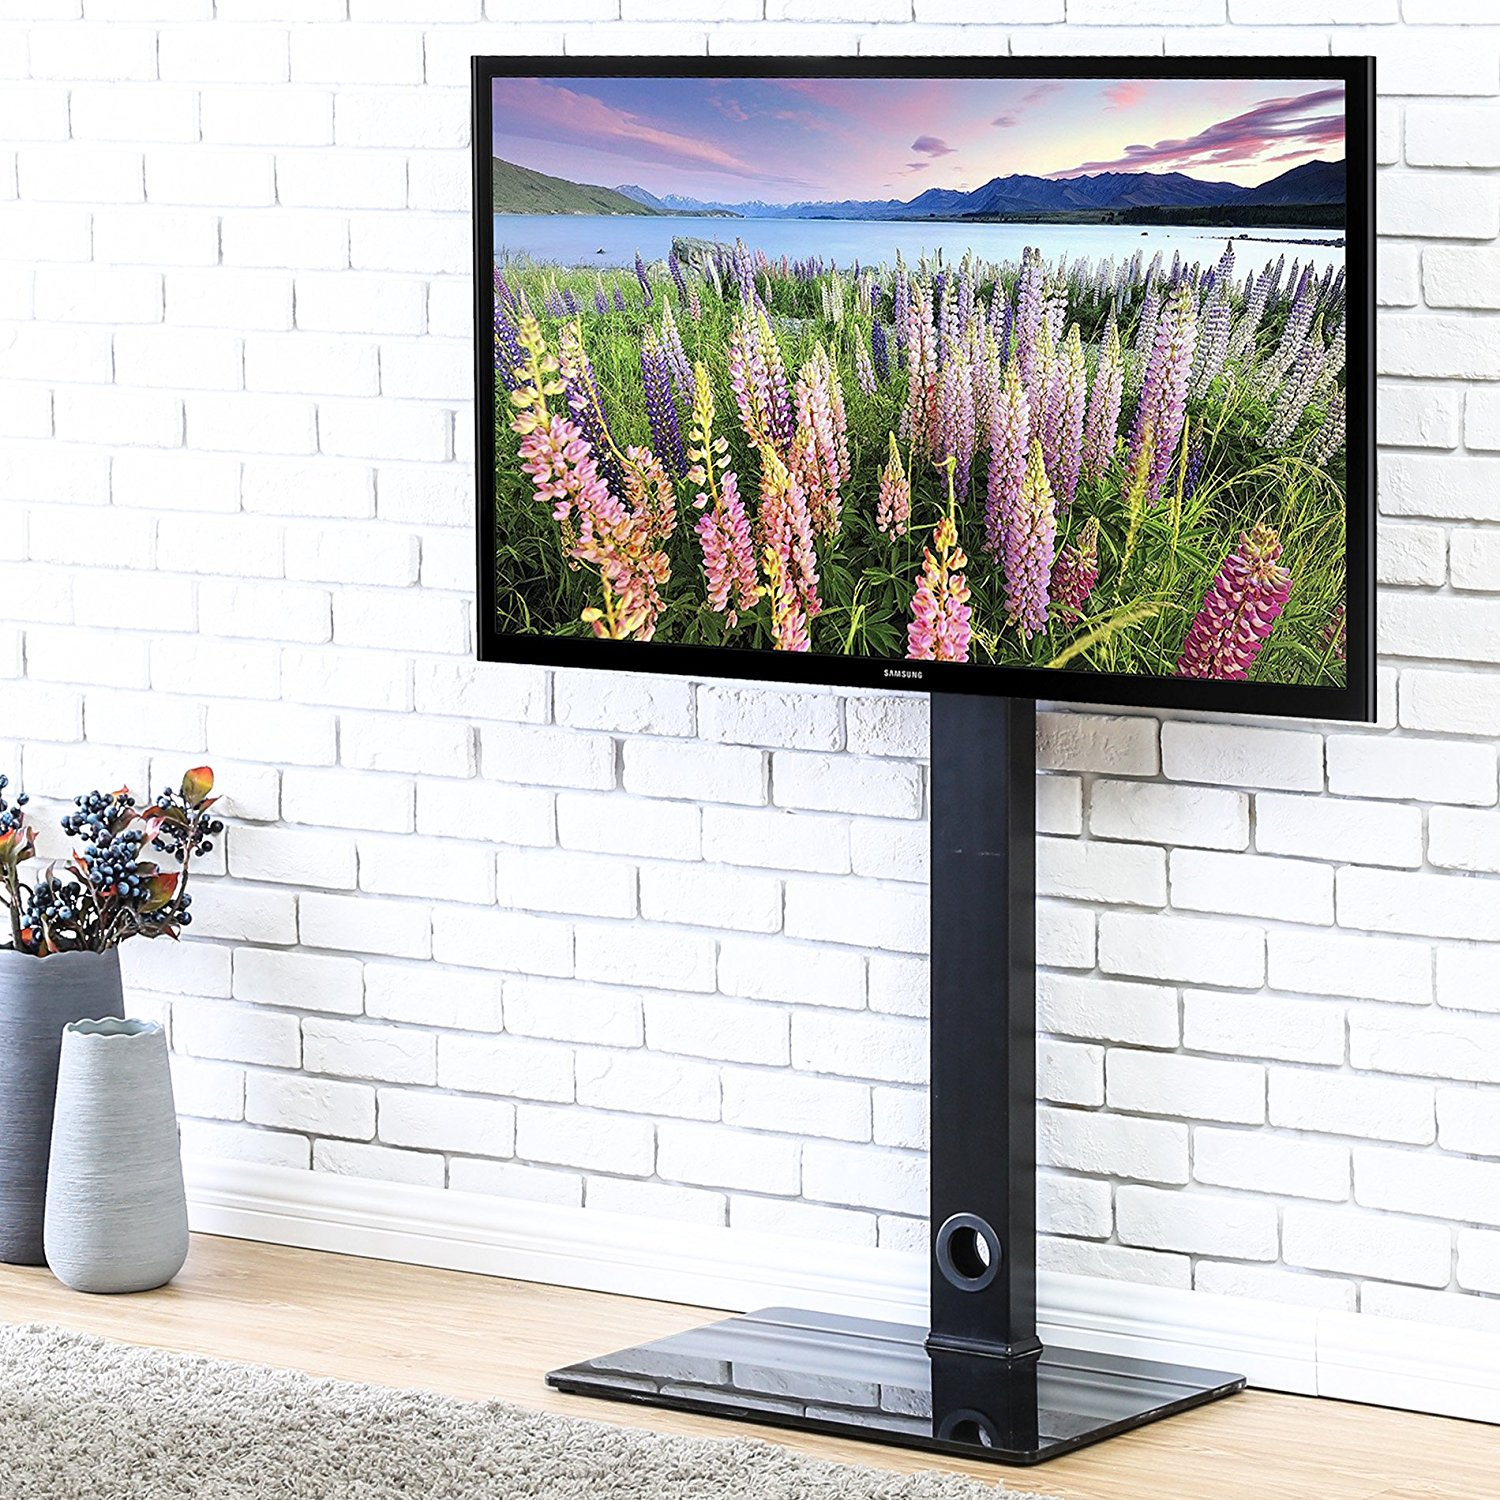 Fitueyes Tv Stand With Swivel Mount For Up To 55 Inch Samsung Vizio